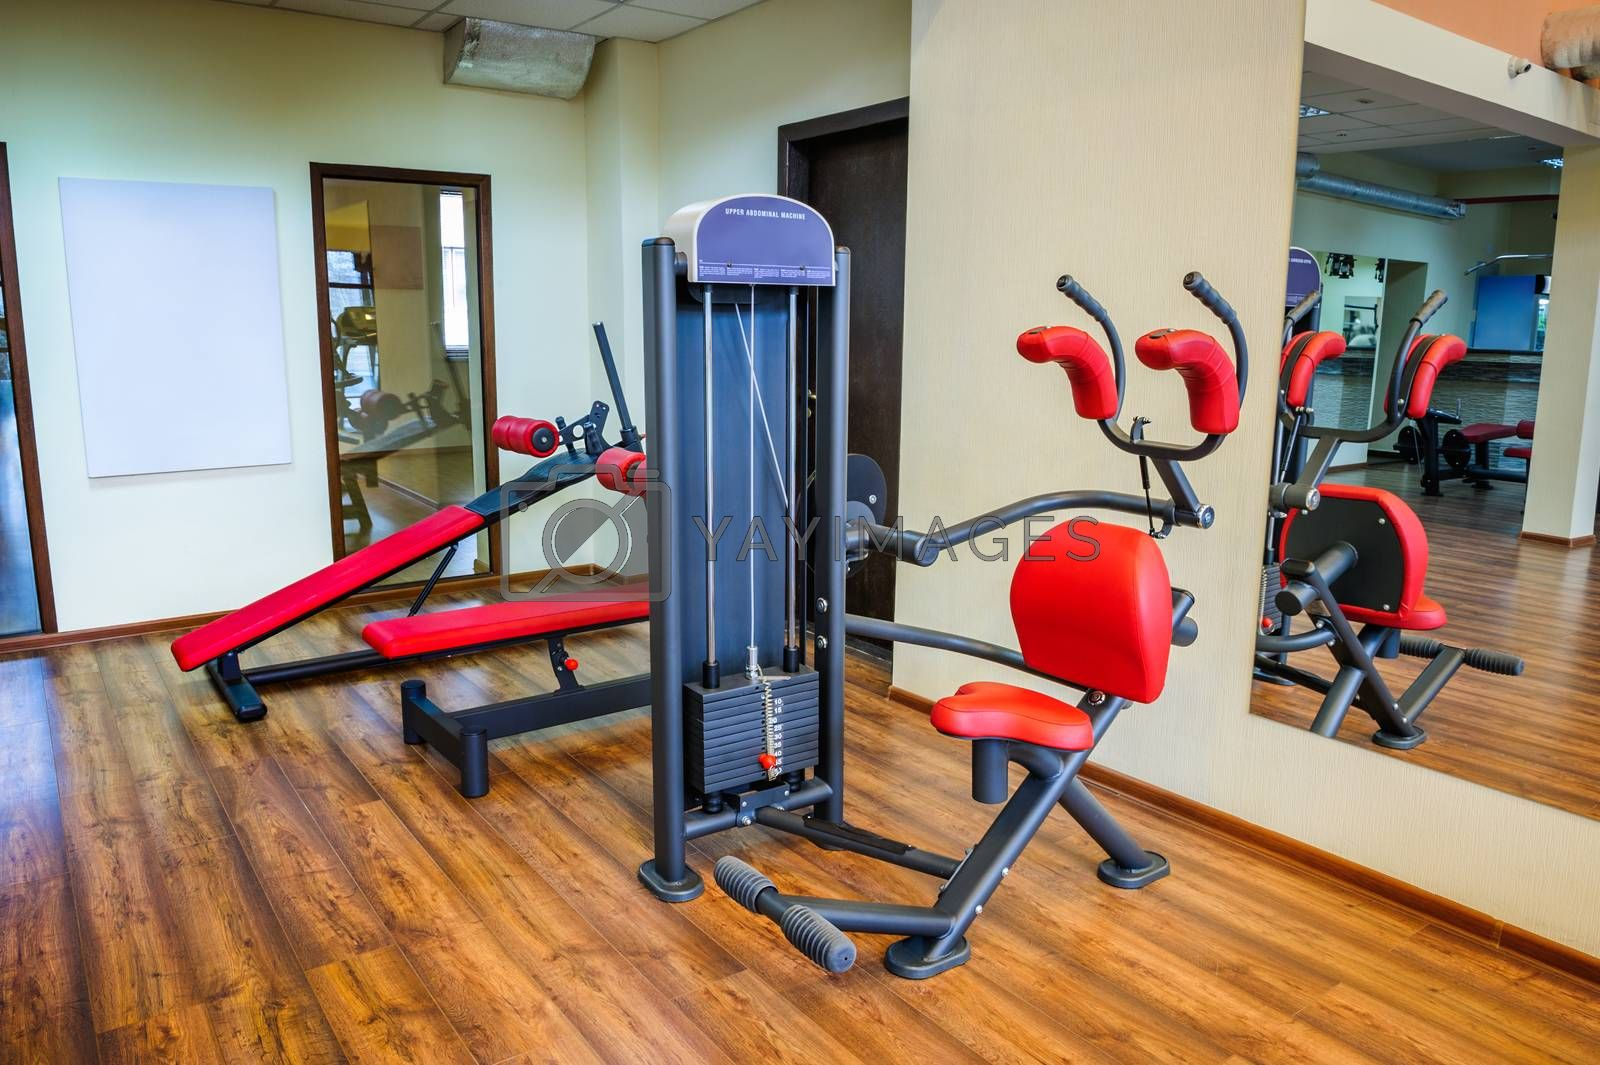 Royalty free image of gym interior by starush